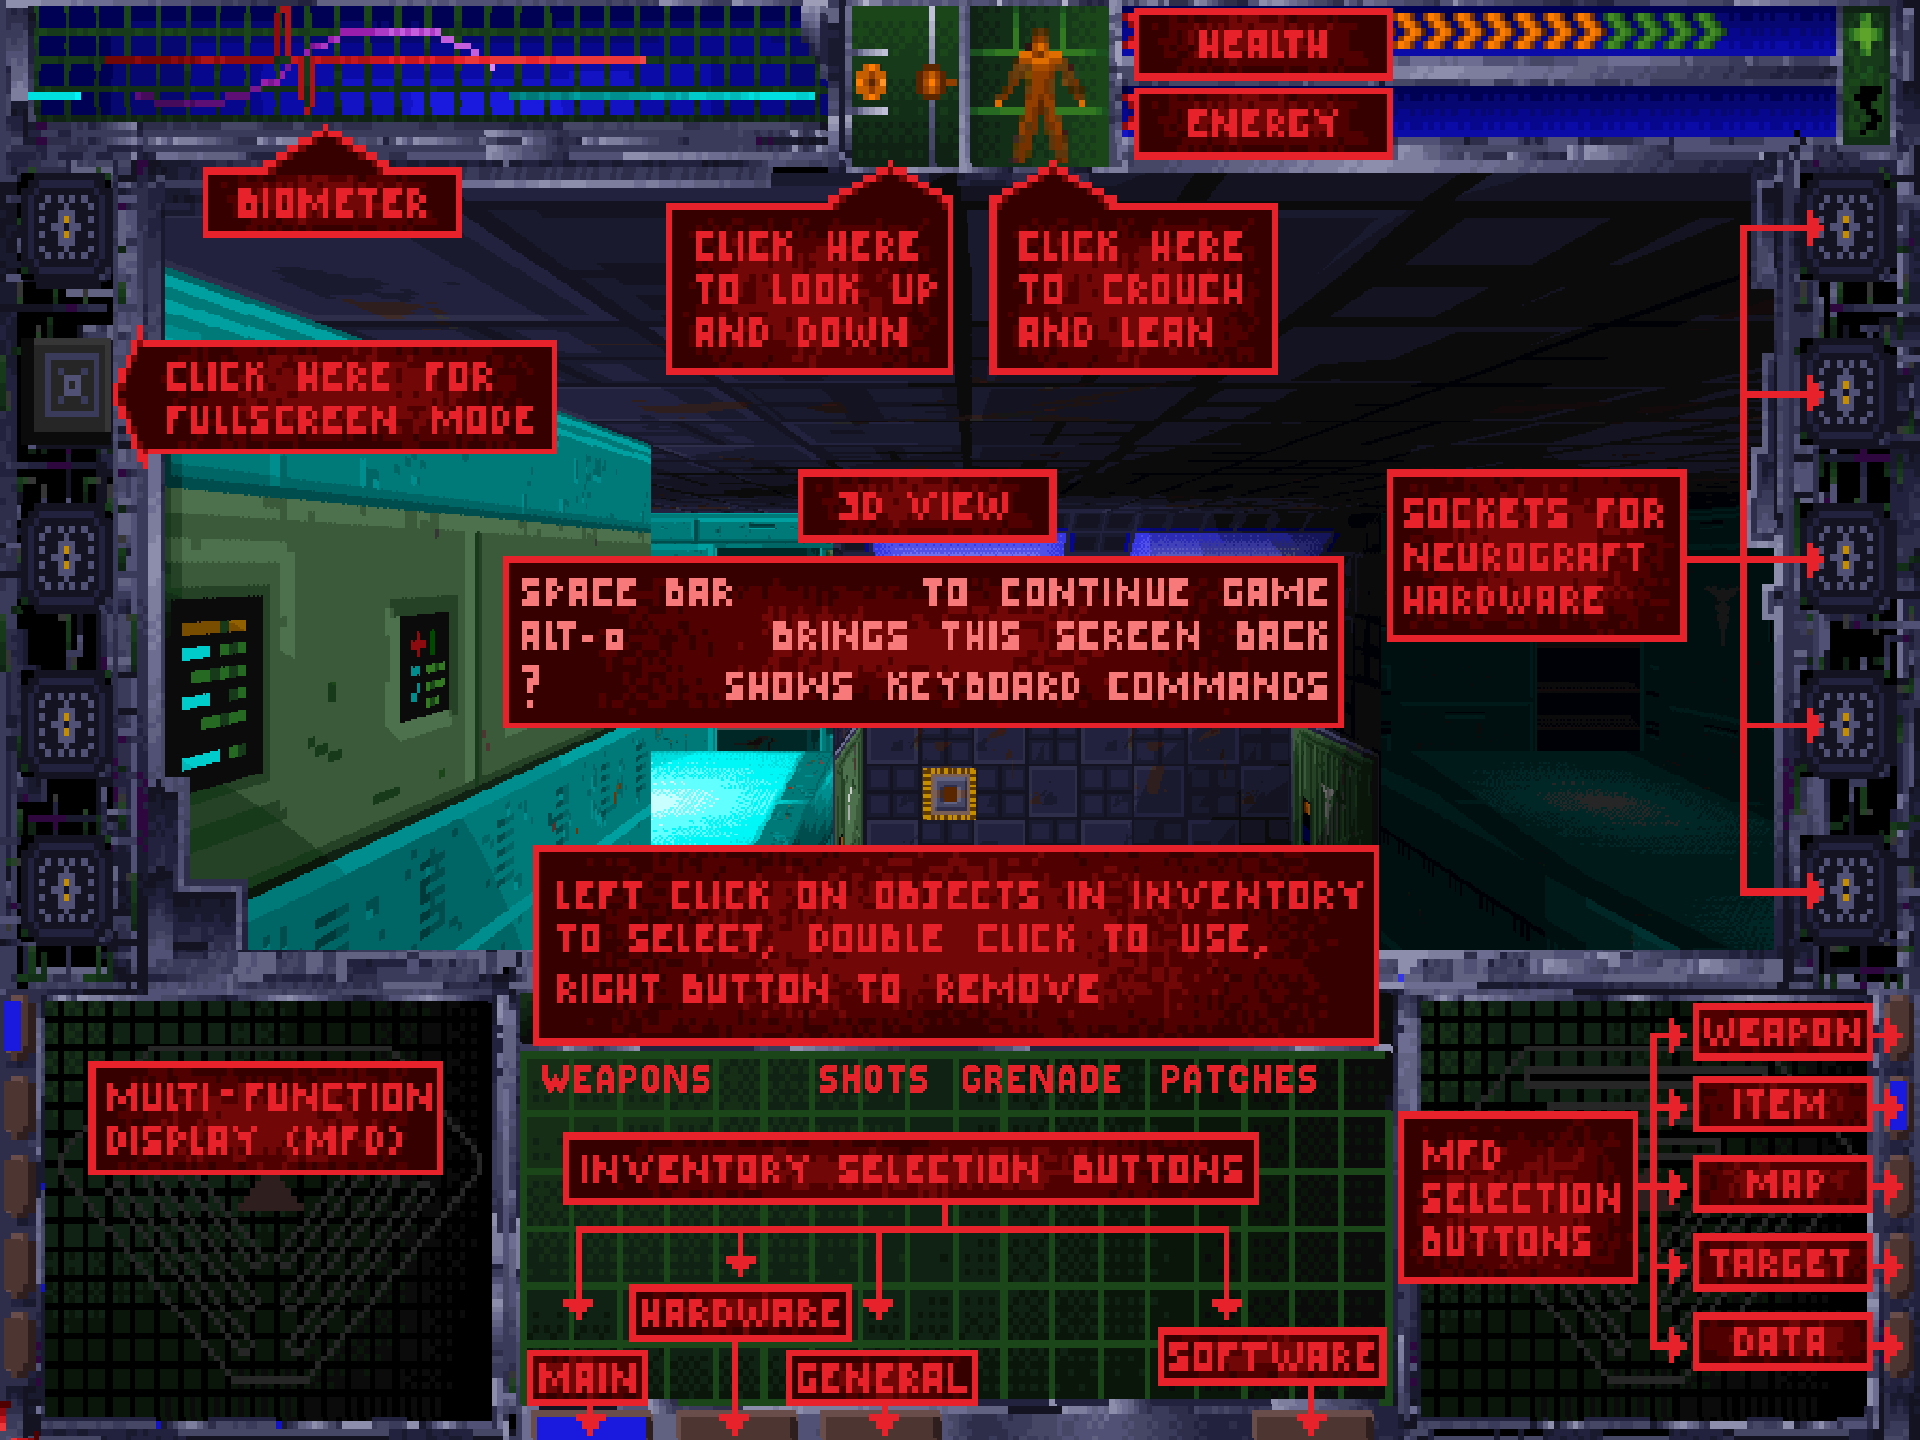 The insane MFD and UI from System Shock.